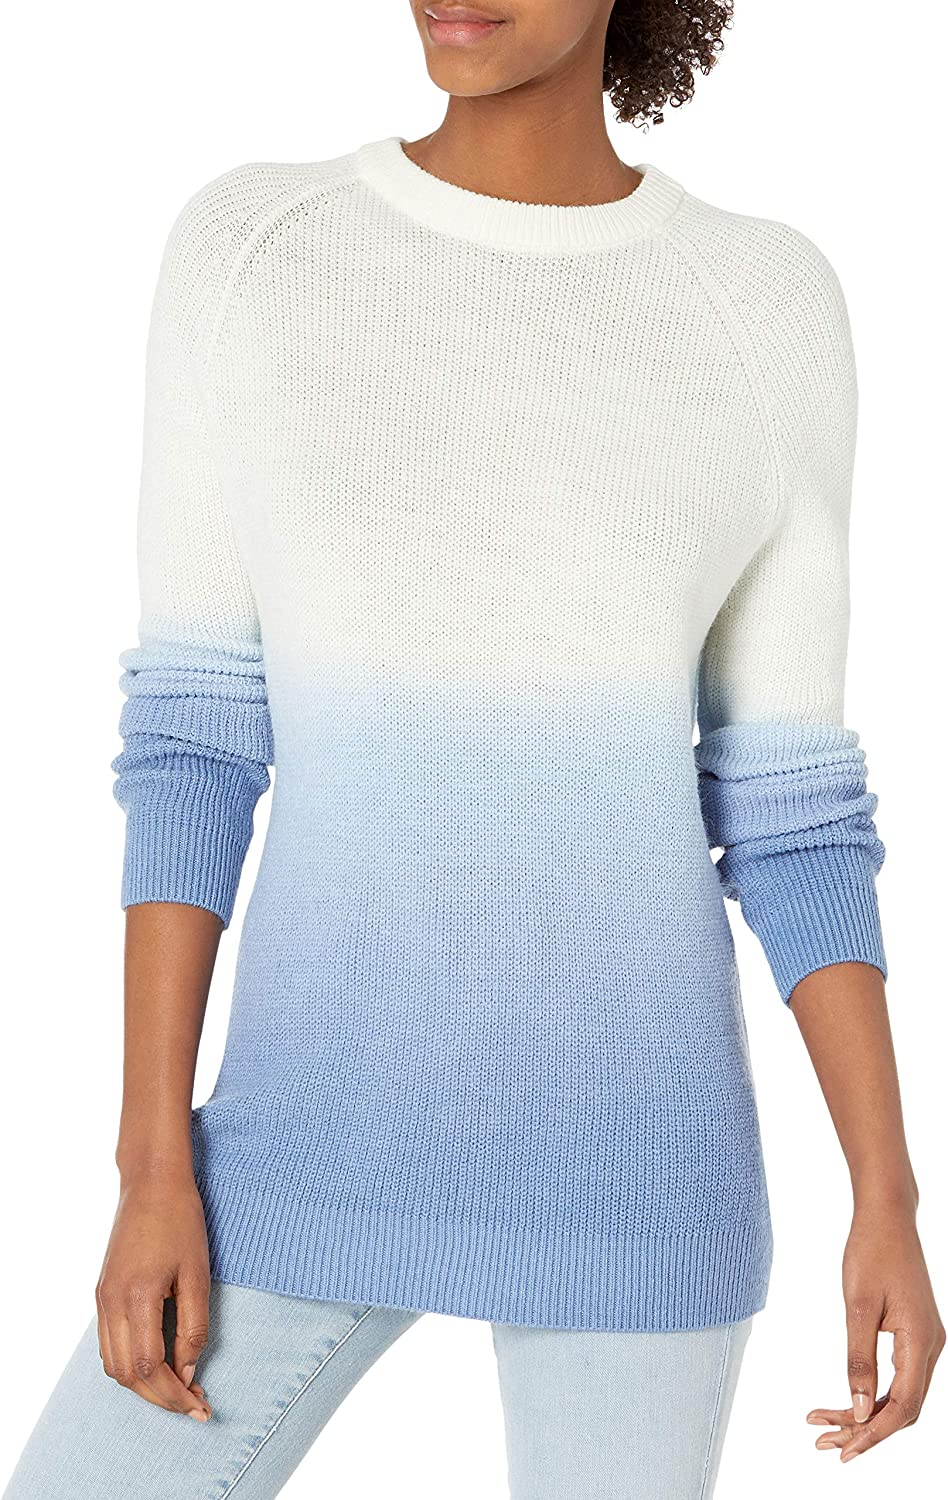 BB Dakota Our shop OFFers the trend rank best service by Steve Madden Sweater Dip Men's Take a